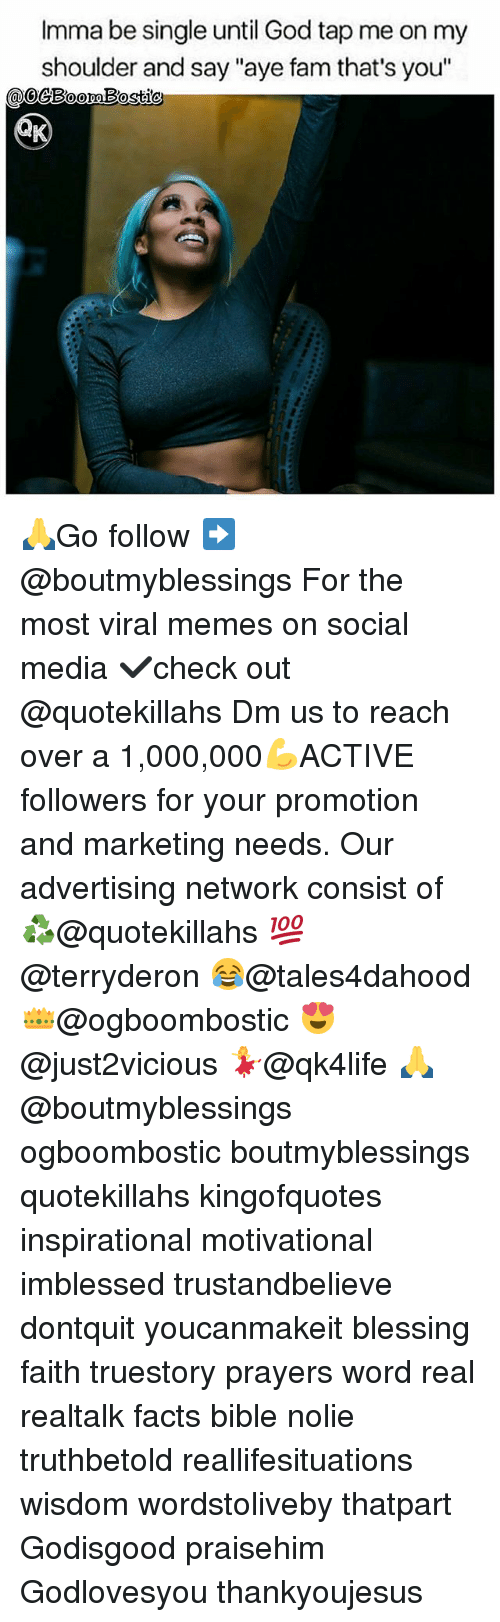 "Facts, Fam, and God: Imma be single until God tap me on my  shoulder and say ""aye fam that's you"" 🙏Go follow ➡@boutmyblessings For the most viral memes on social media ✔check out @quotekillahs Dm us to reach over a 1,000,000💪ACTIVE followers for your promotion and marketing needs. Our advertising network consist of ♻@quotekillahs 💯@terryderon 😂@tales4dahood 👑@ogboombostic 😍@just2vicious 💃@qk4life 🙏@boutmyblessings ogboombostic boutmyblessings quotekillahs kingofquotes inspirational motivational imblessed trustandbelieve dontquit youcanmakeit blessing faith truestory prayers word real realtalk facts bible nolie truthbetold reallifesituations wisdom wordstoliveby thatpart Godisgood praisehim Godlovesyou thankyoujesus"